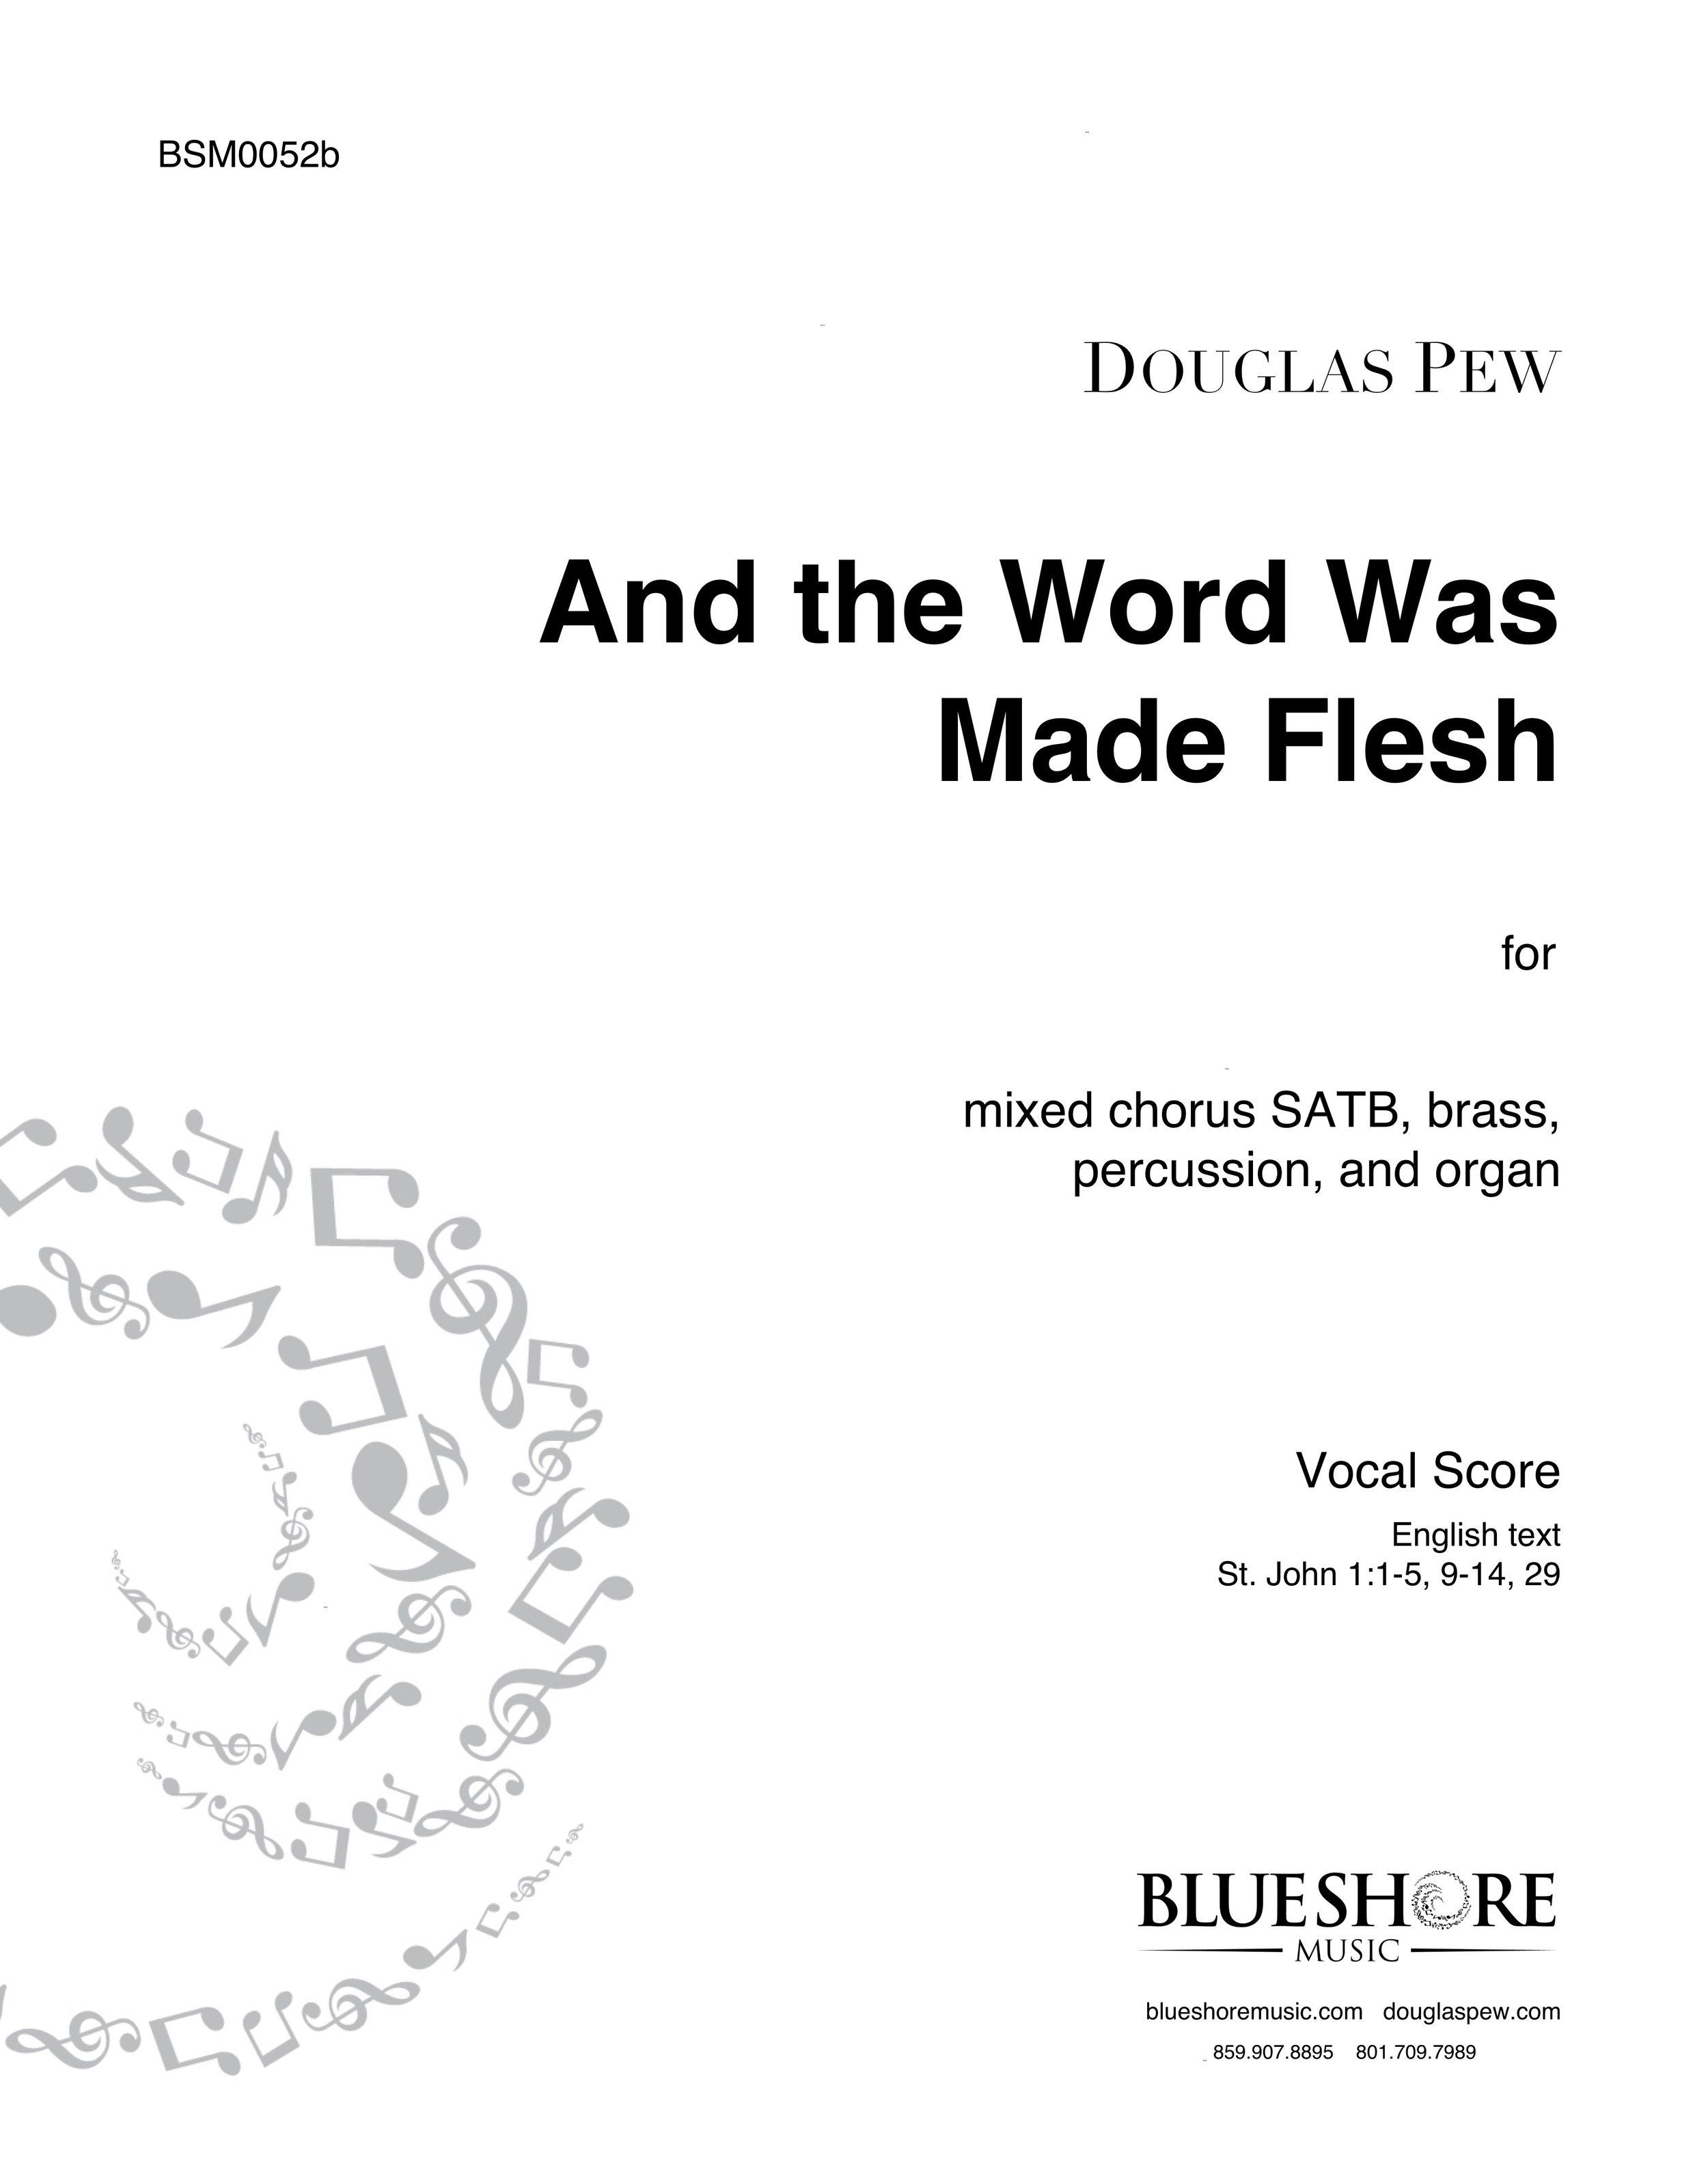 And the Word Was Made Flesh  , for SATB, brass, percussion, and organ